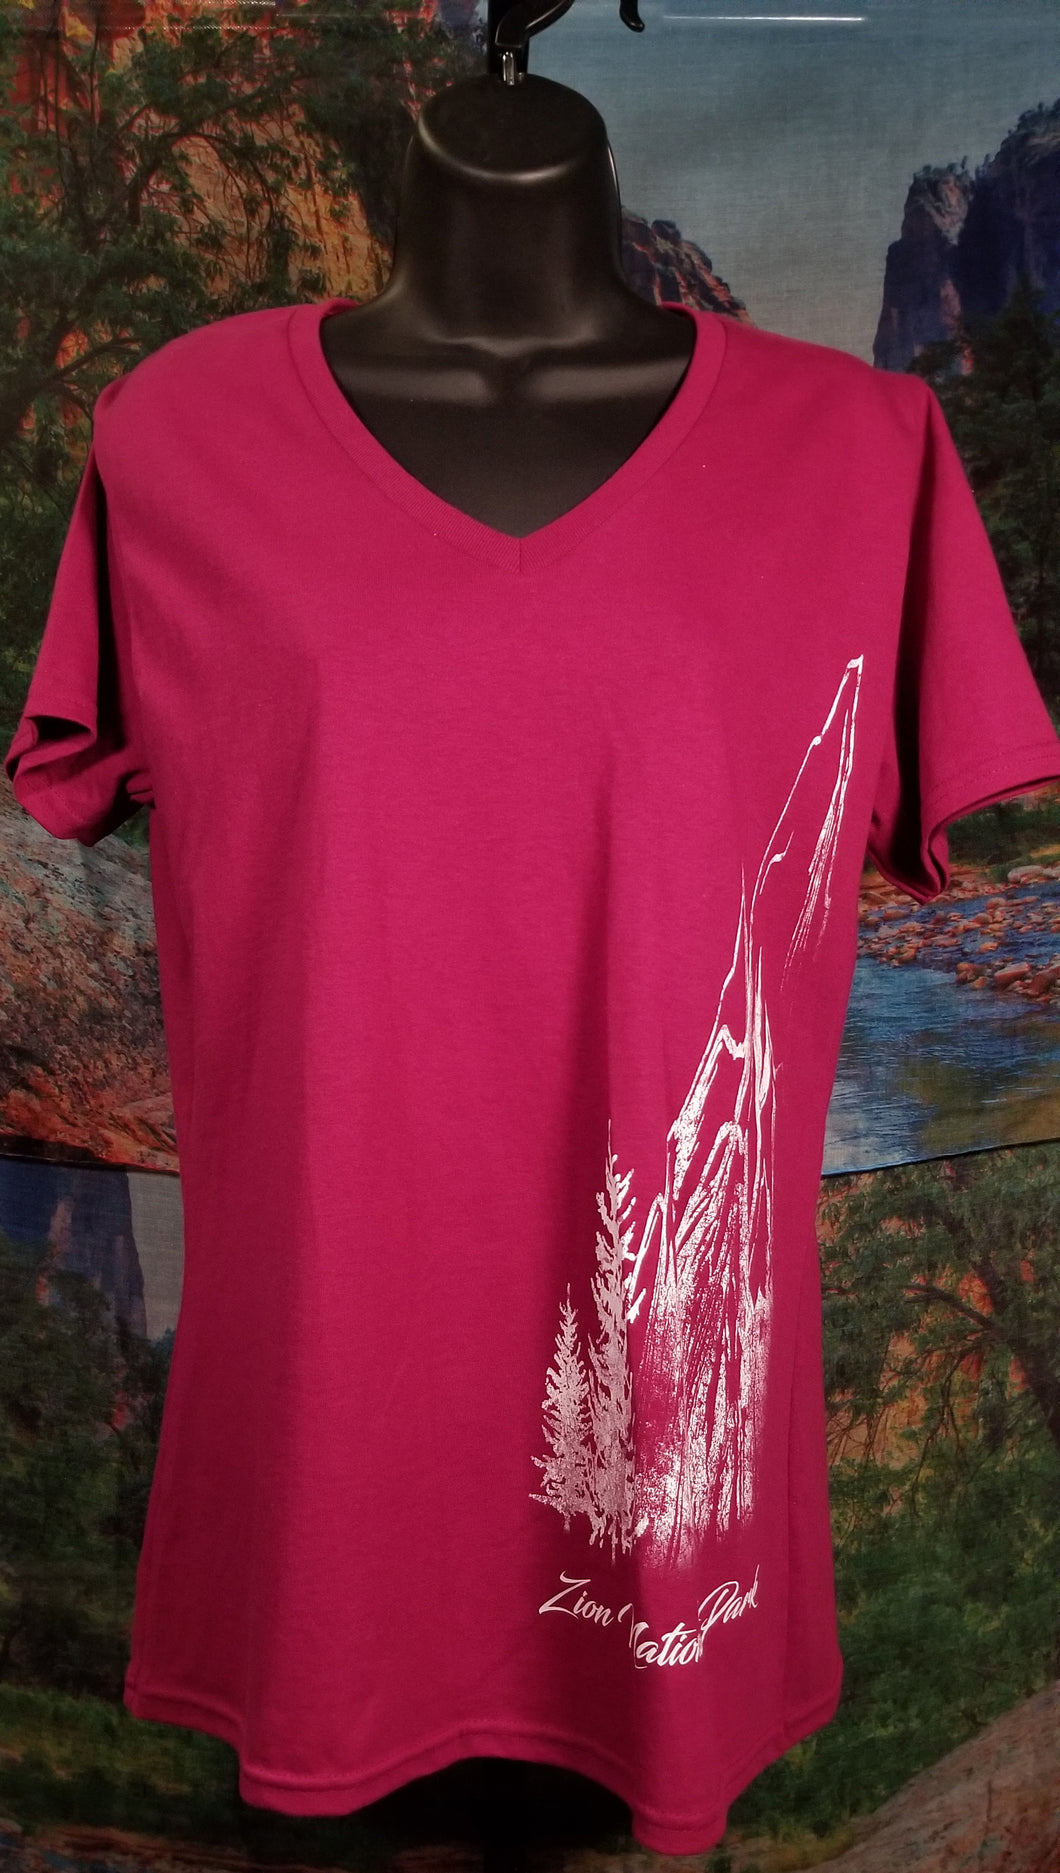 Zion National Park Sketchy Mountain Women's T-Shirt